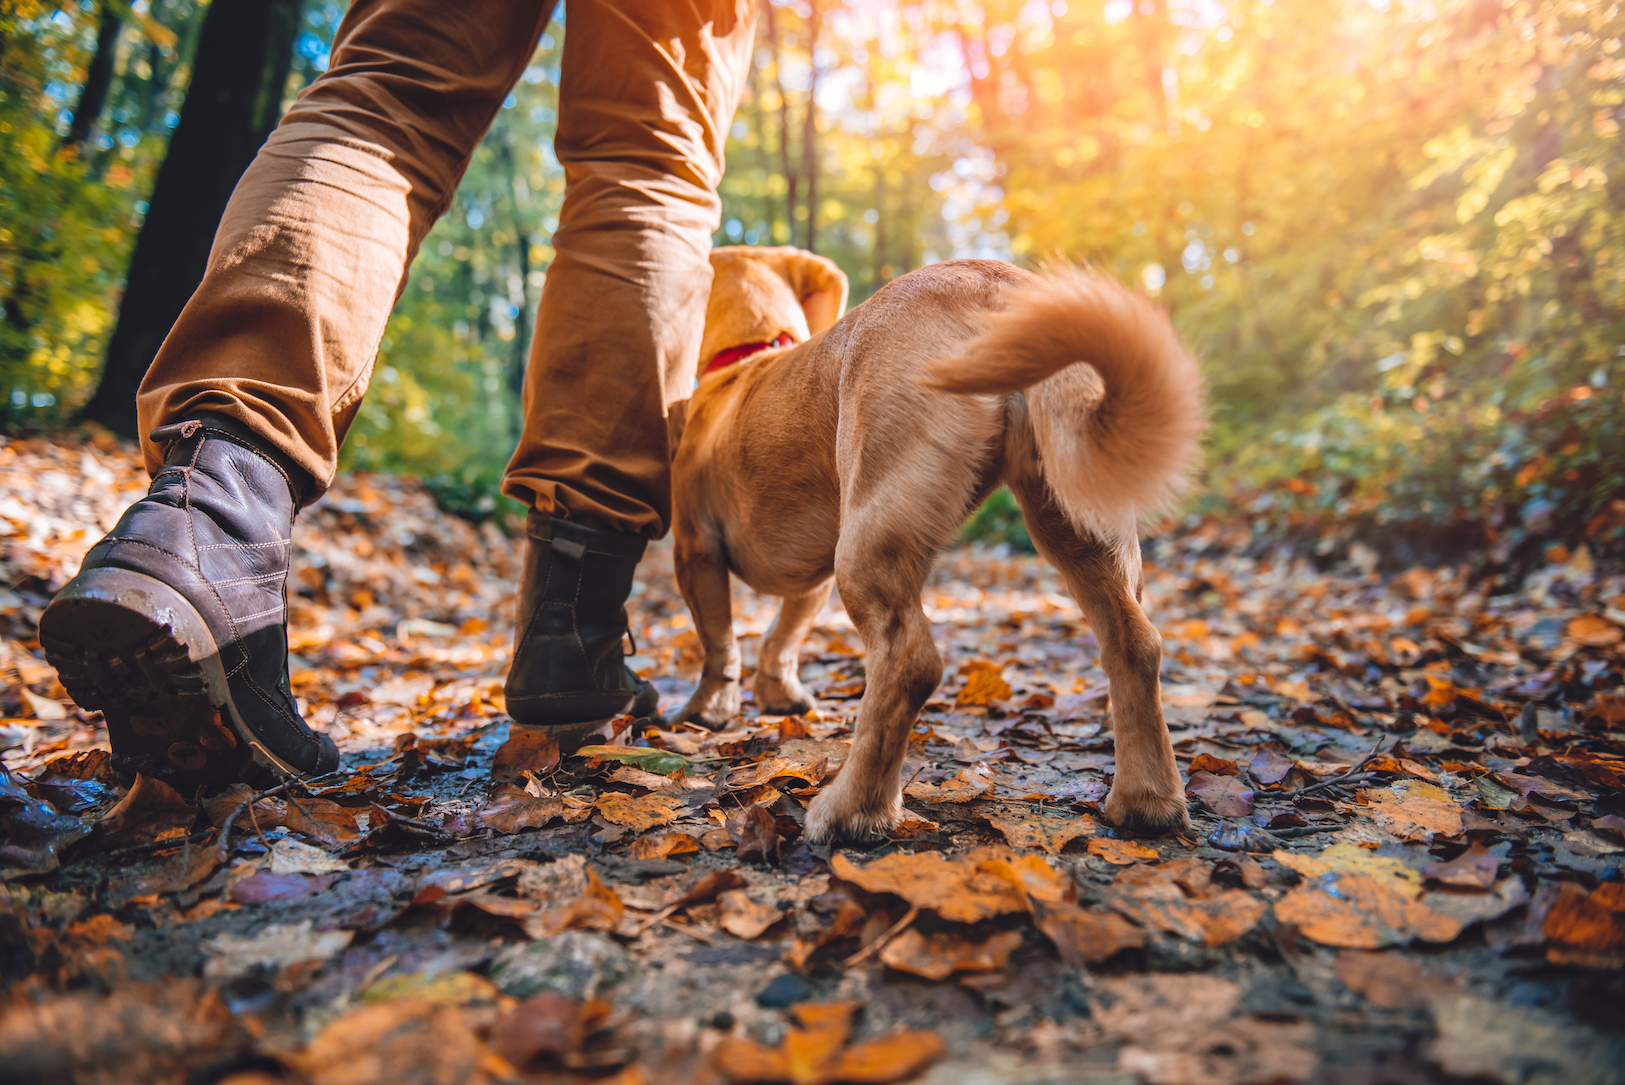 Dogs have long been hiking companions to humans. But as outdoor activities change, should this relationship be reconsidered?